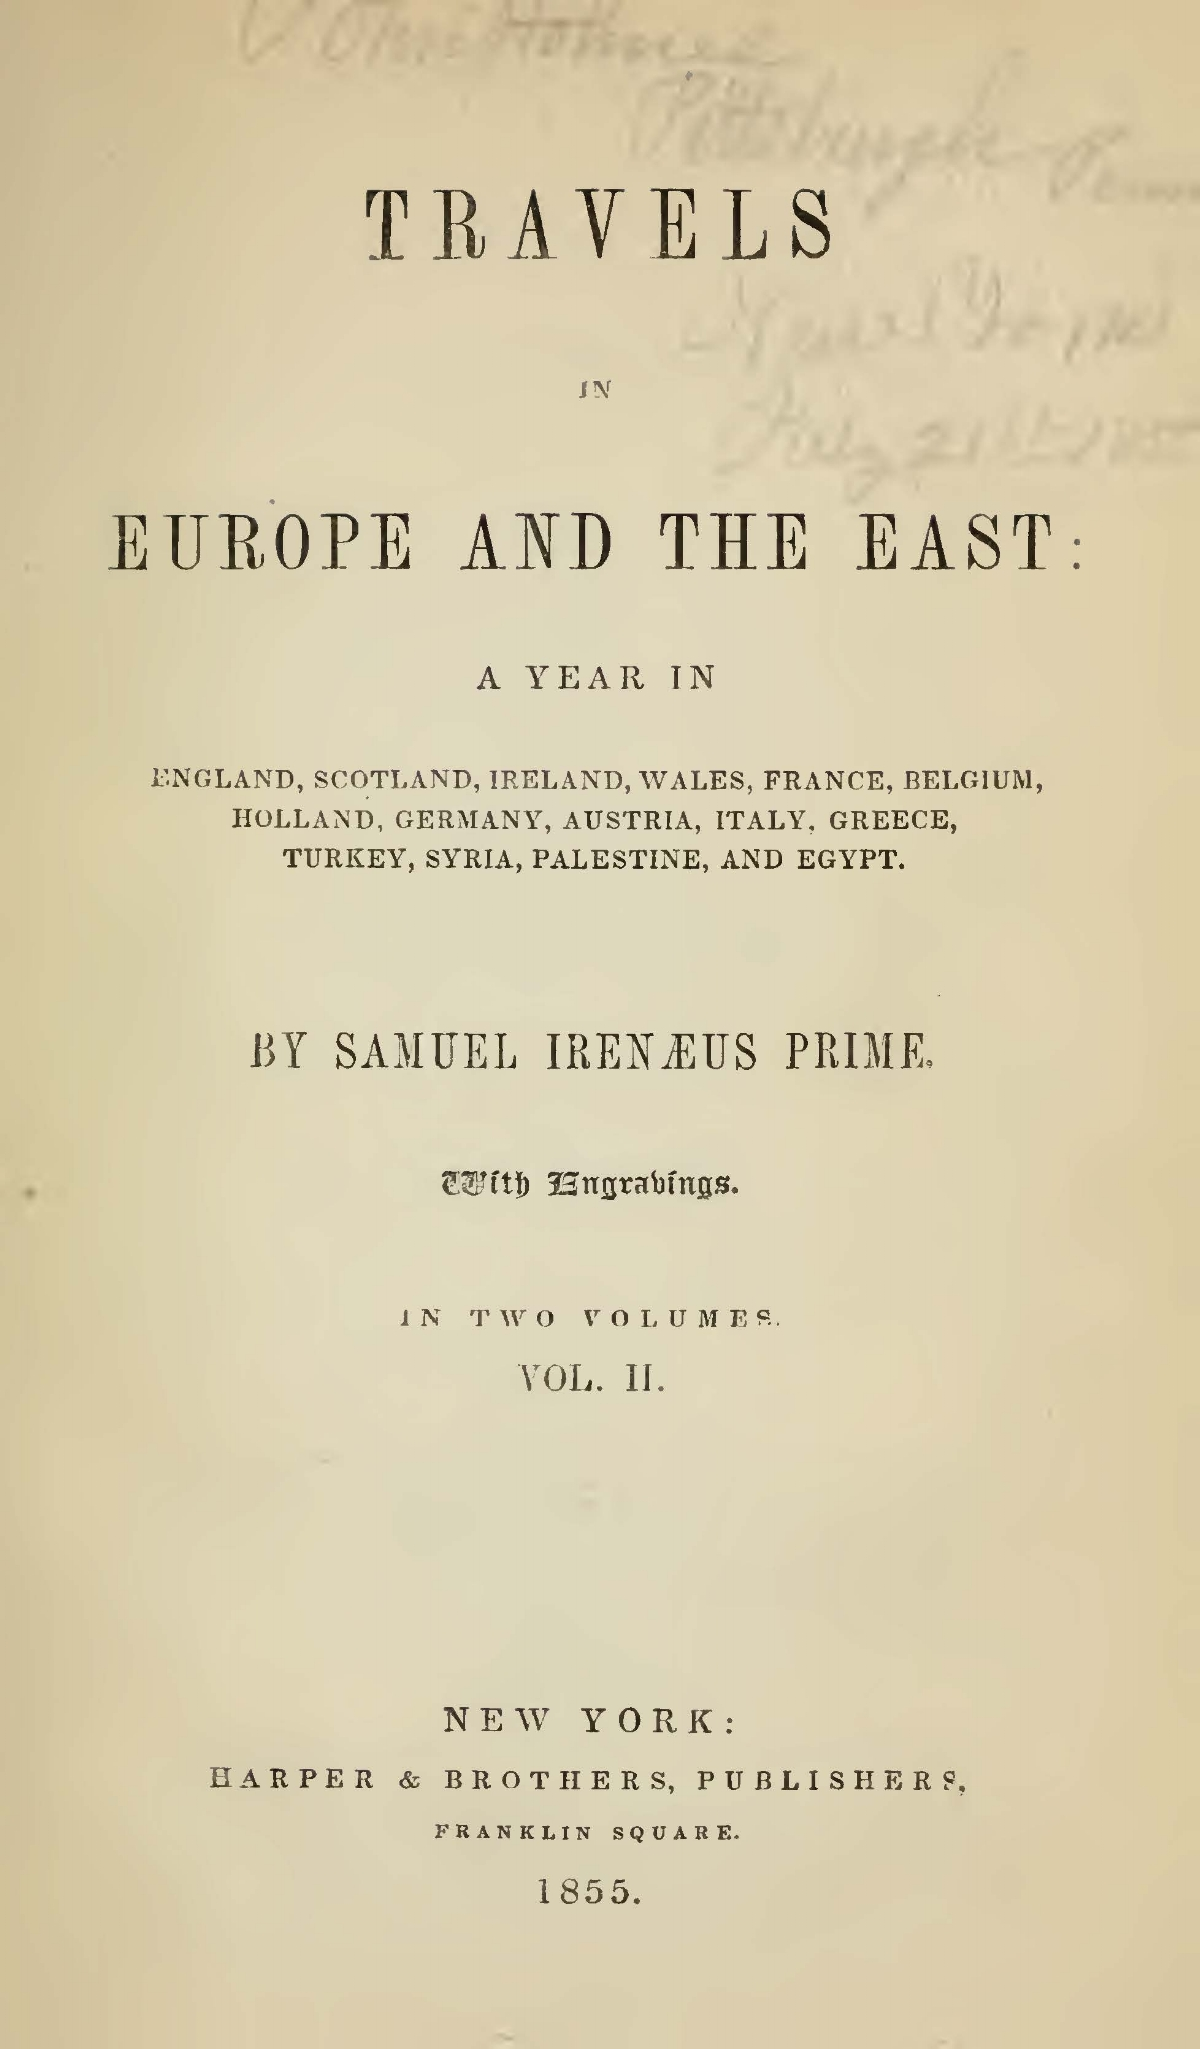 Prime, Samuel Irenaeus, Travels in Europe and the East, Vol. 2 Title Page.jpg